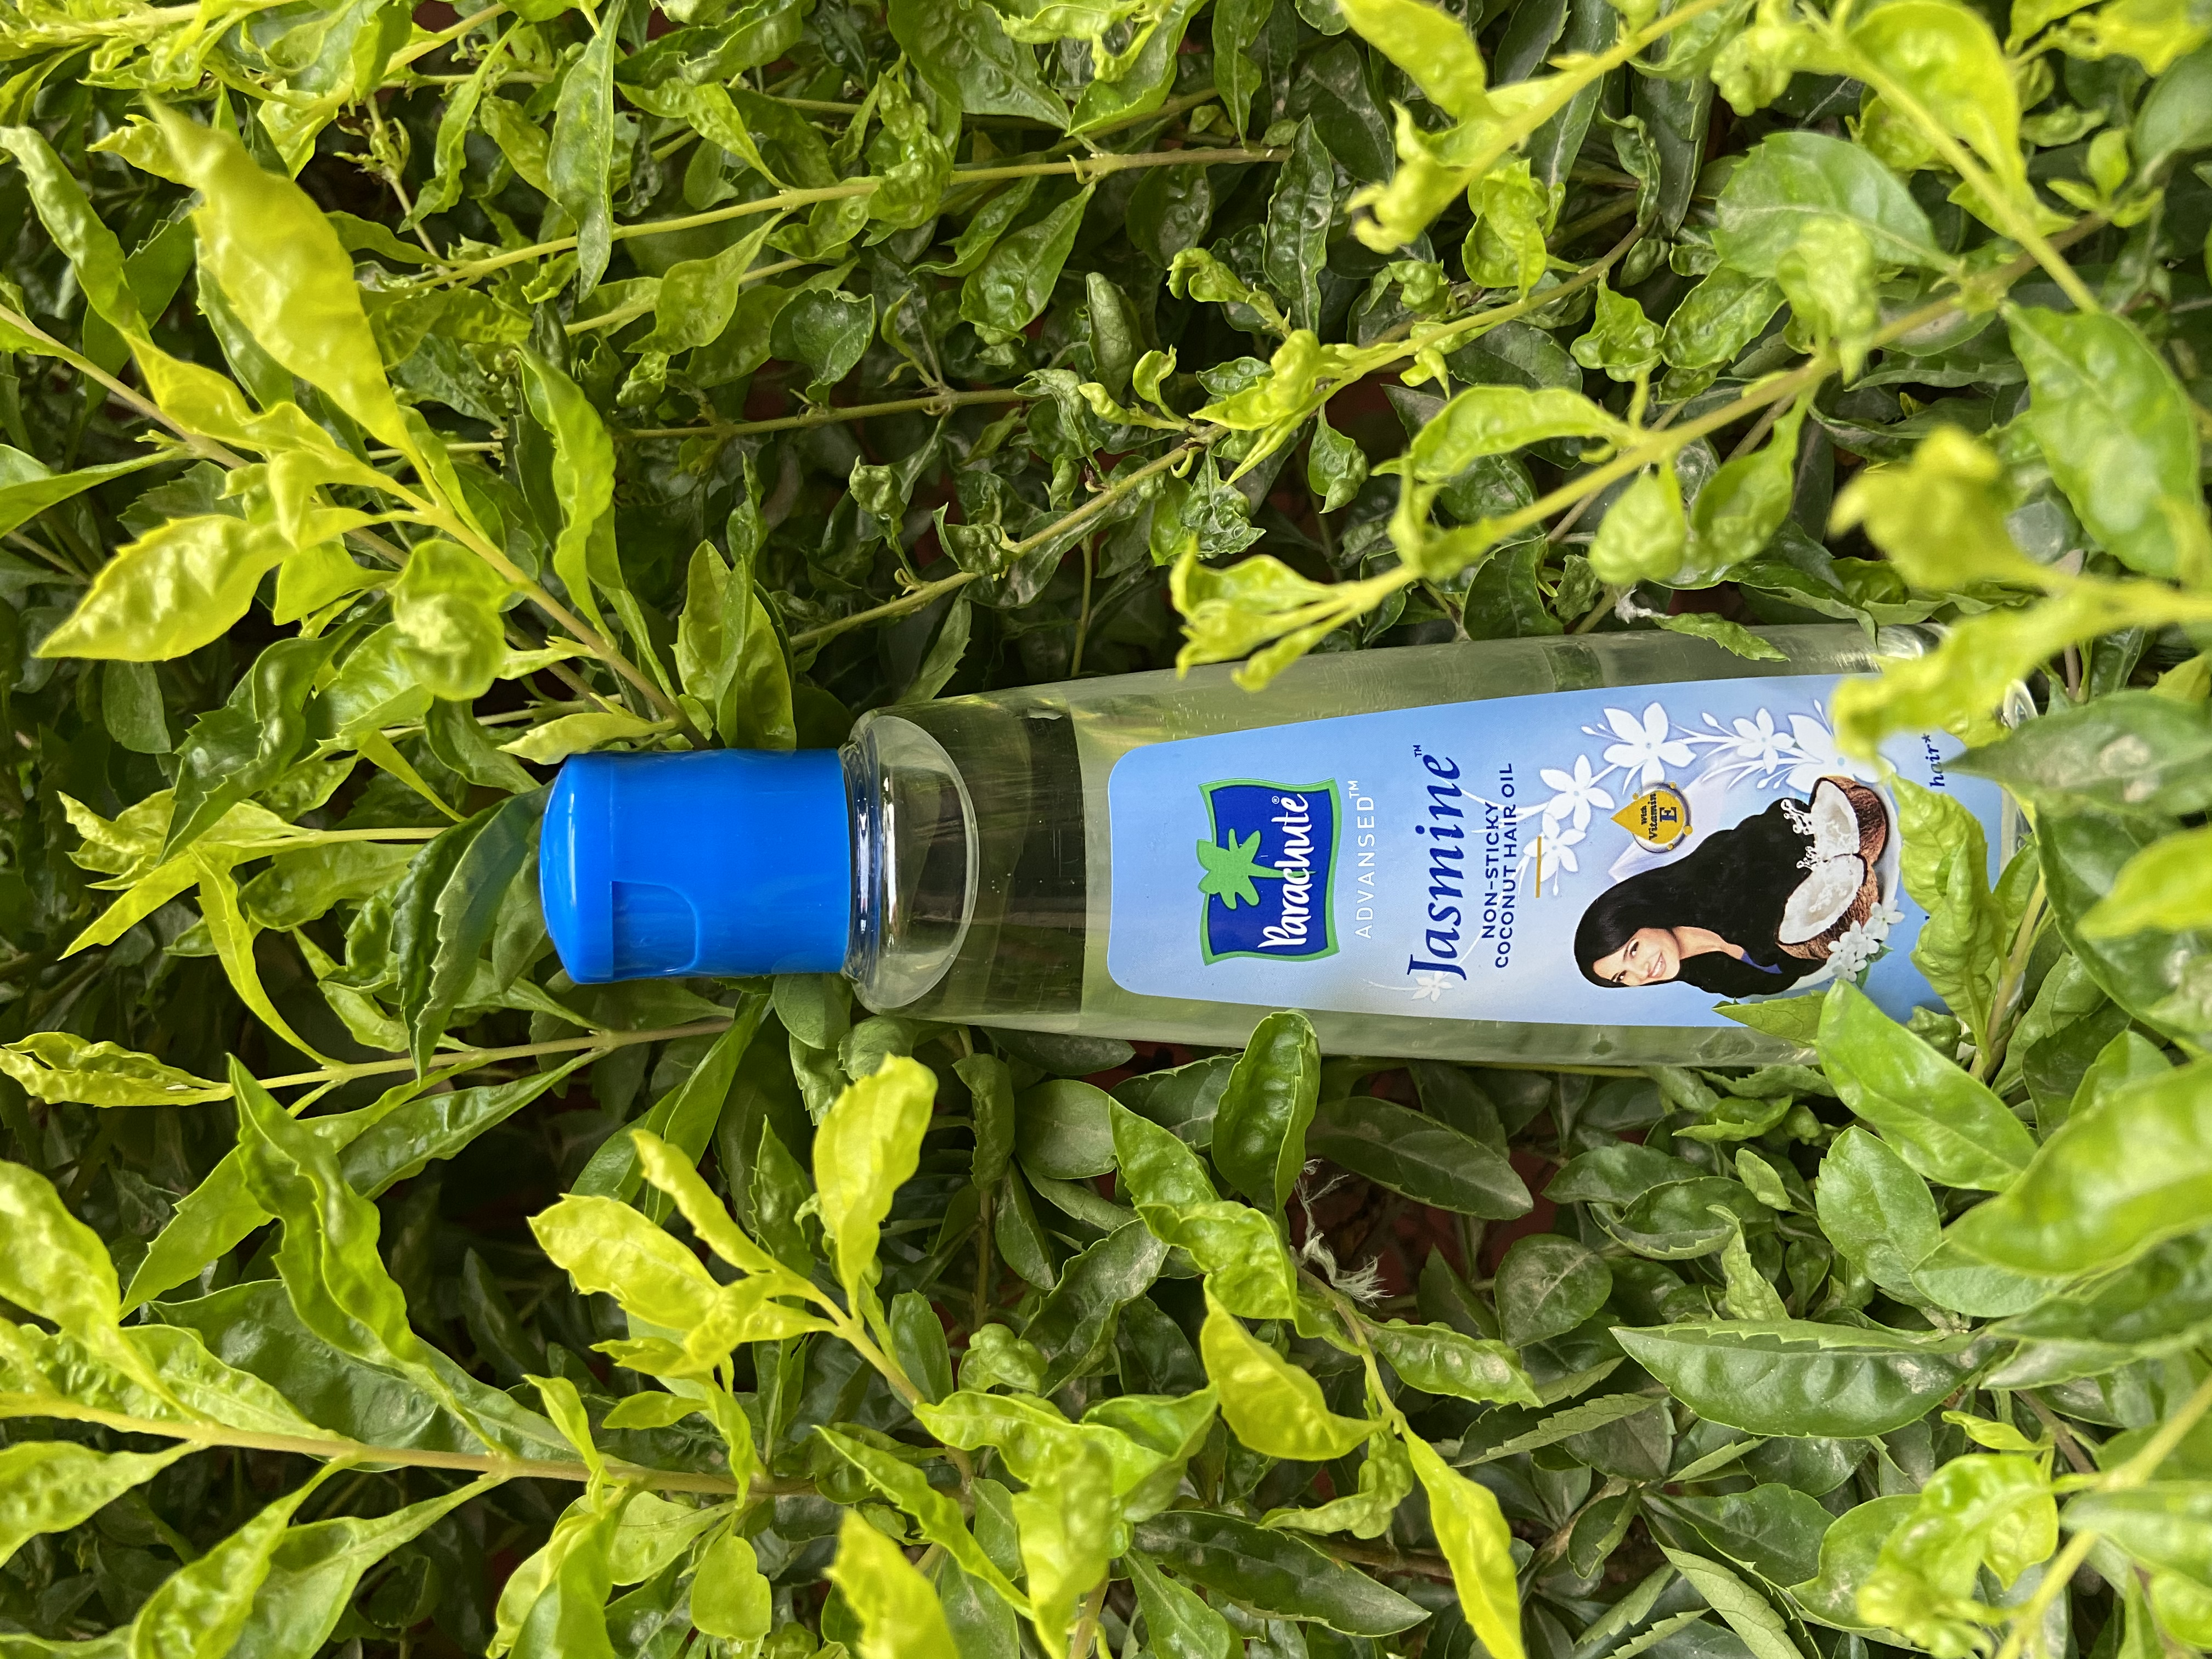 Parachute Advansed Aloe Vera Enriched Coconut Hair Oil pic 2-Hairoil that Has Jasmine in the Core-By kirti_widhera